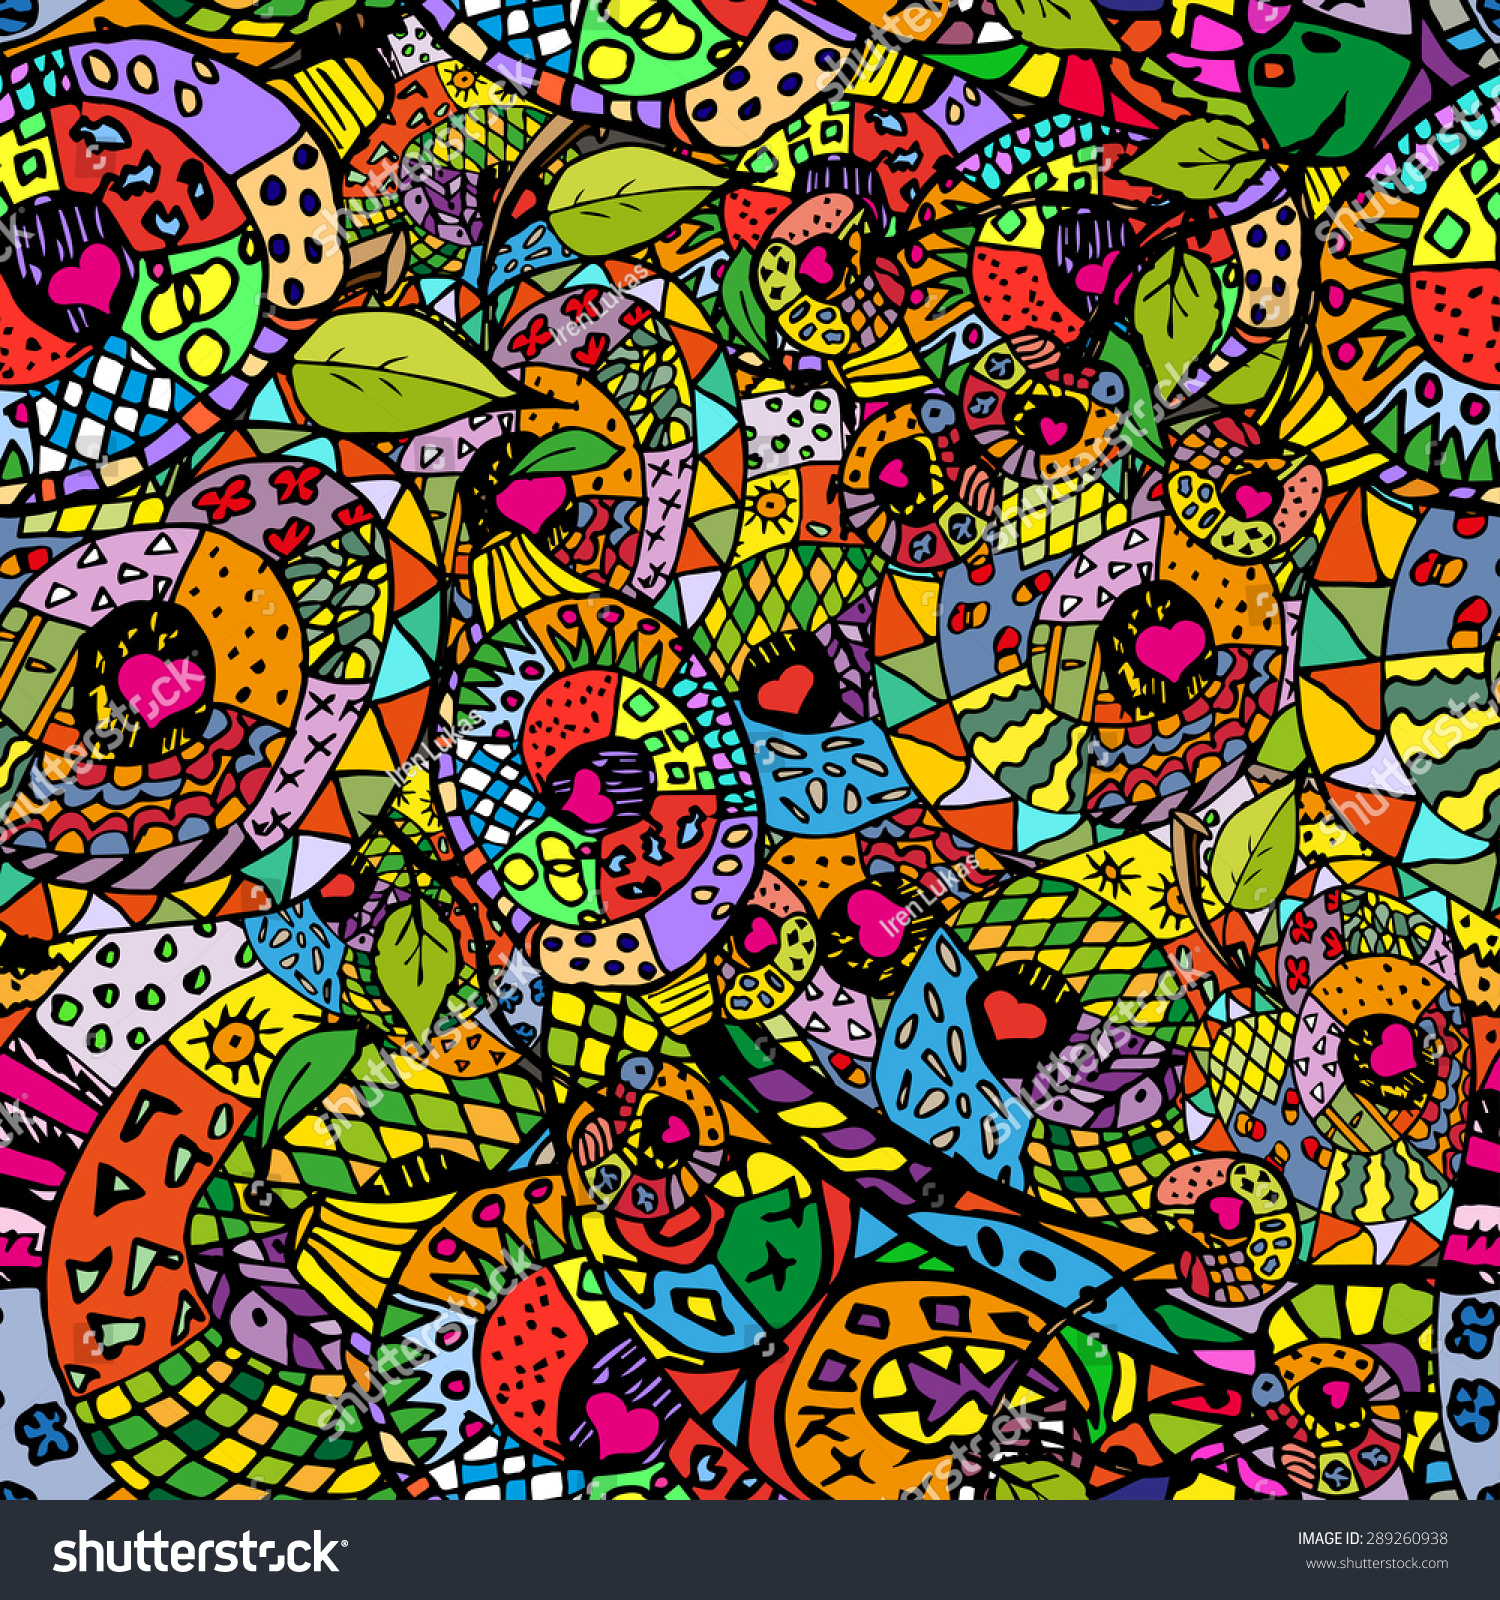 zentangle colorful seamless pattern with warm colors pattern can be used for fabric wallpaper